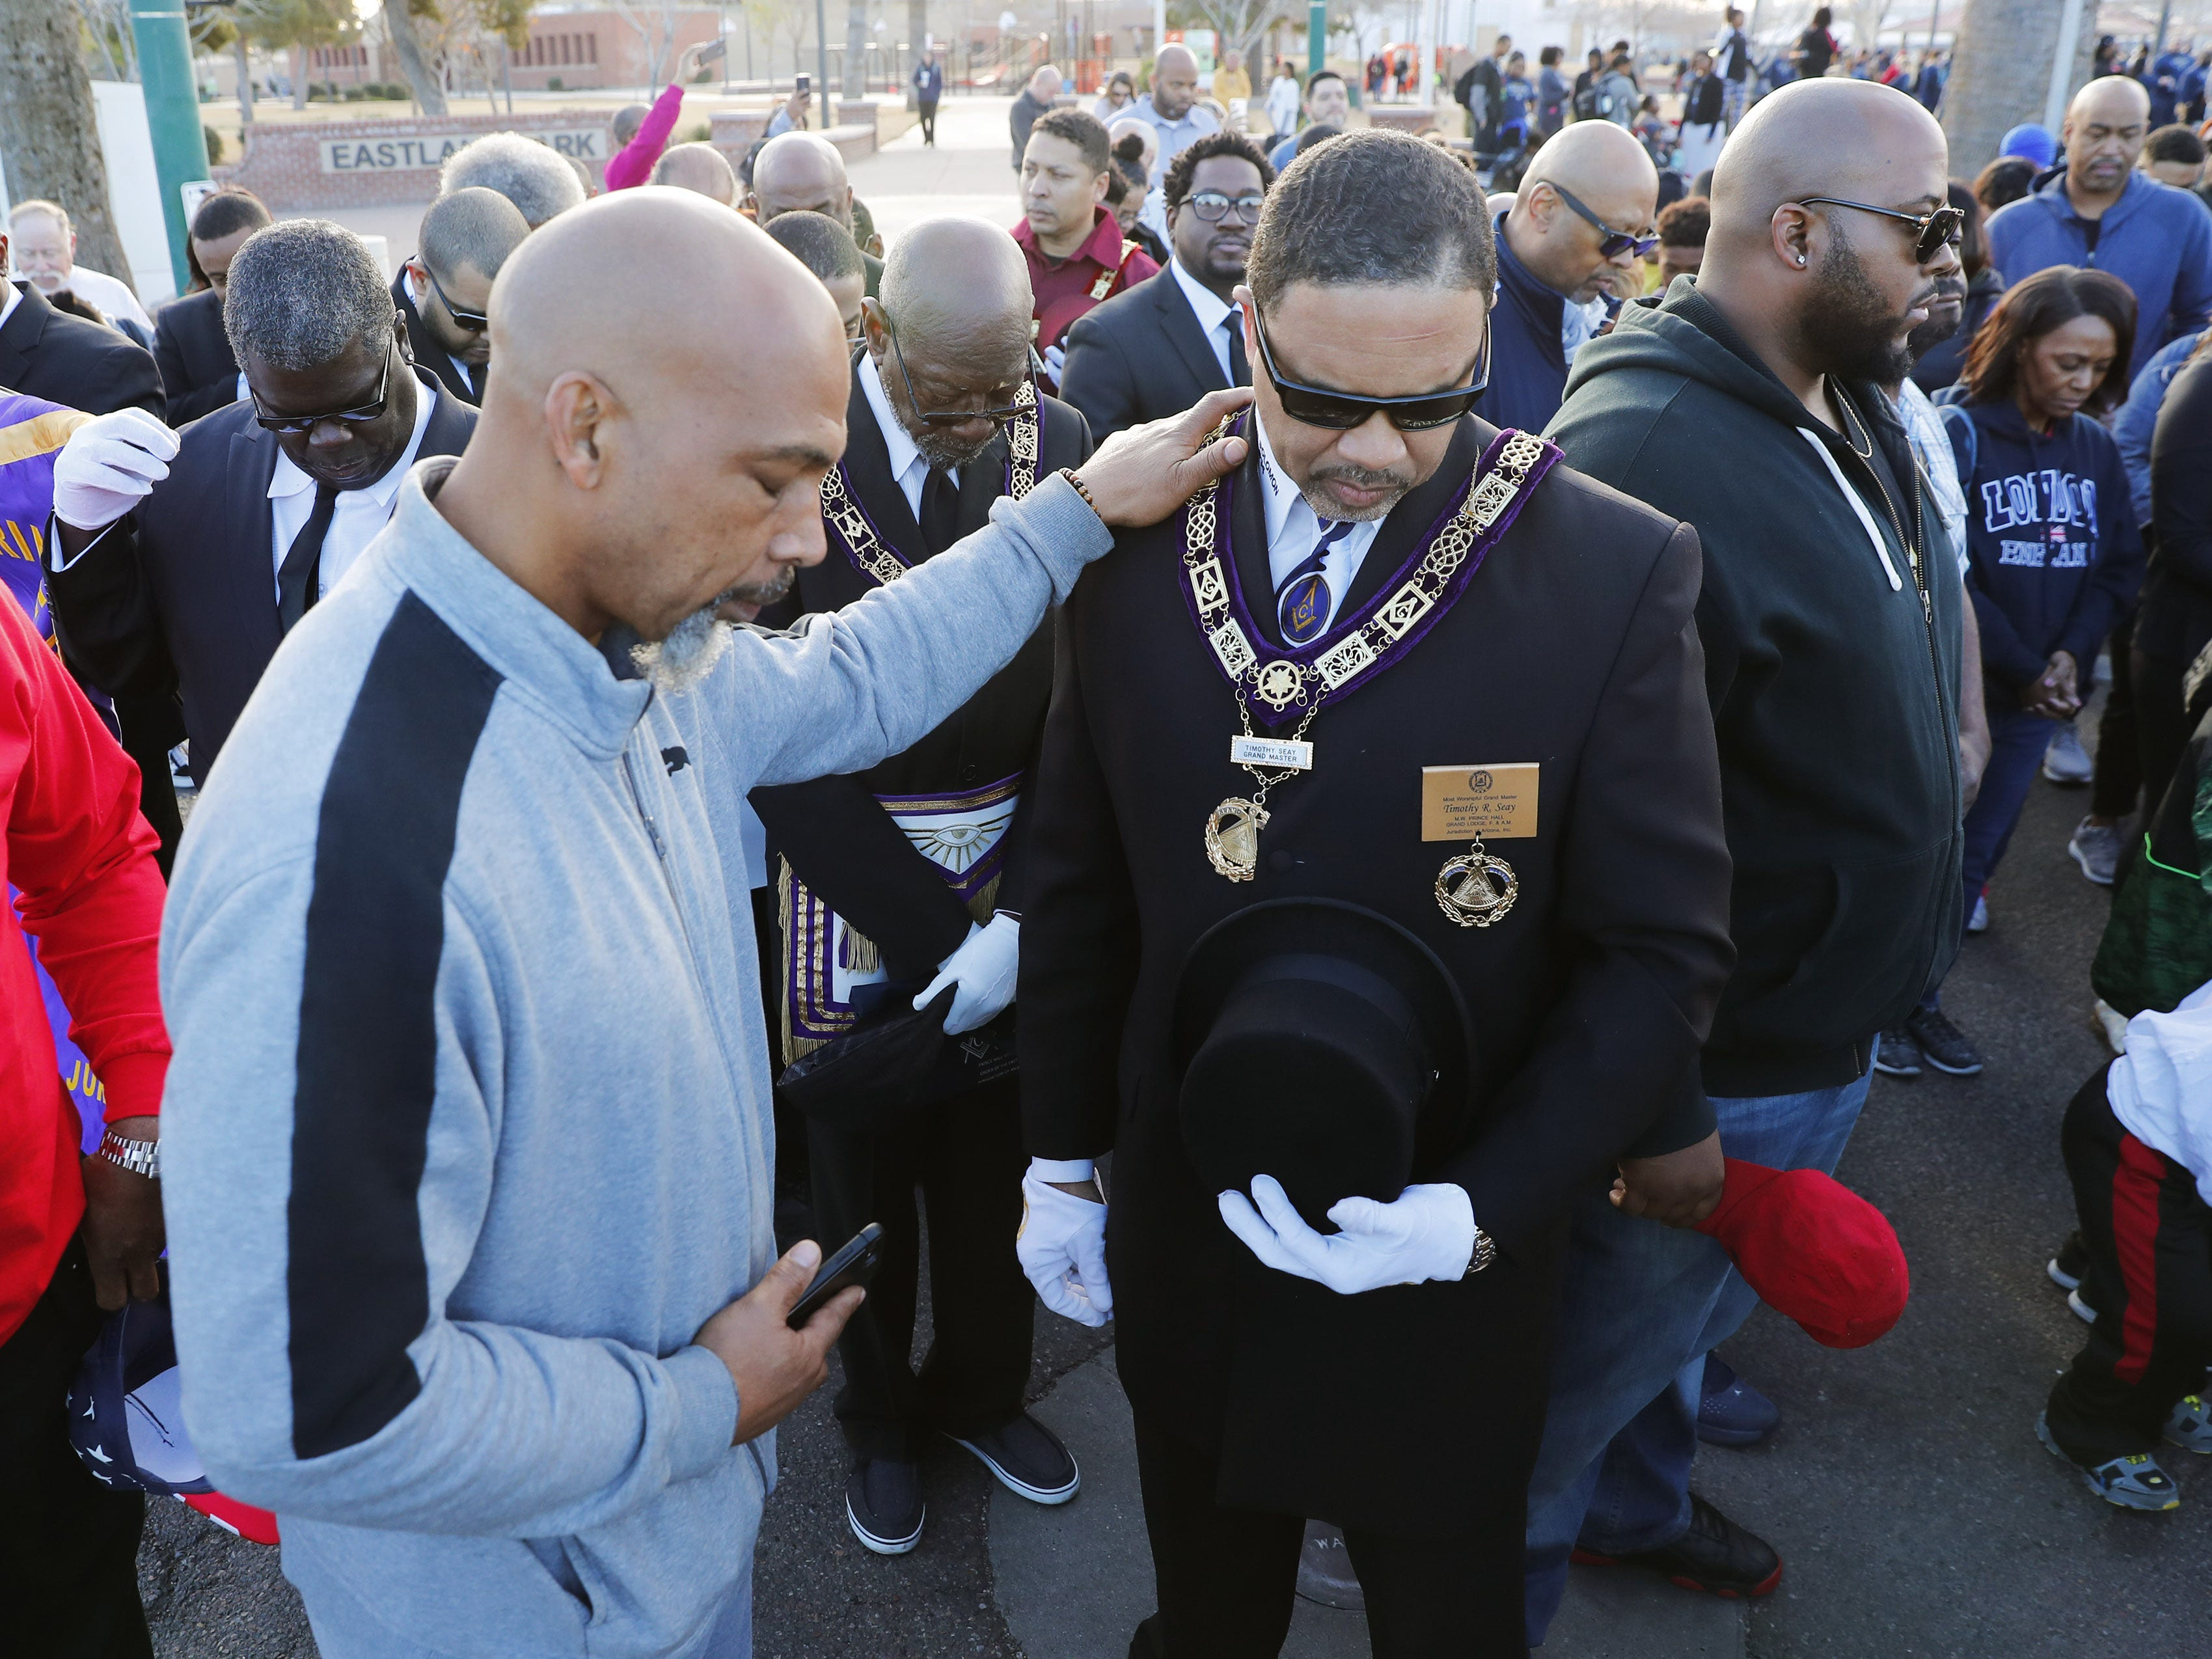 Kala Roy (left) and Timmothy Seay bow their heads in prayer before marching honoring Dr. Martin Luther King in downtown Phoenix, Ariz. January 21, 2019. The march is symbolic of Dr. King's revolutionary 1968 march.